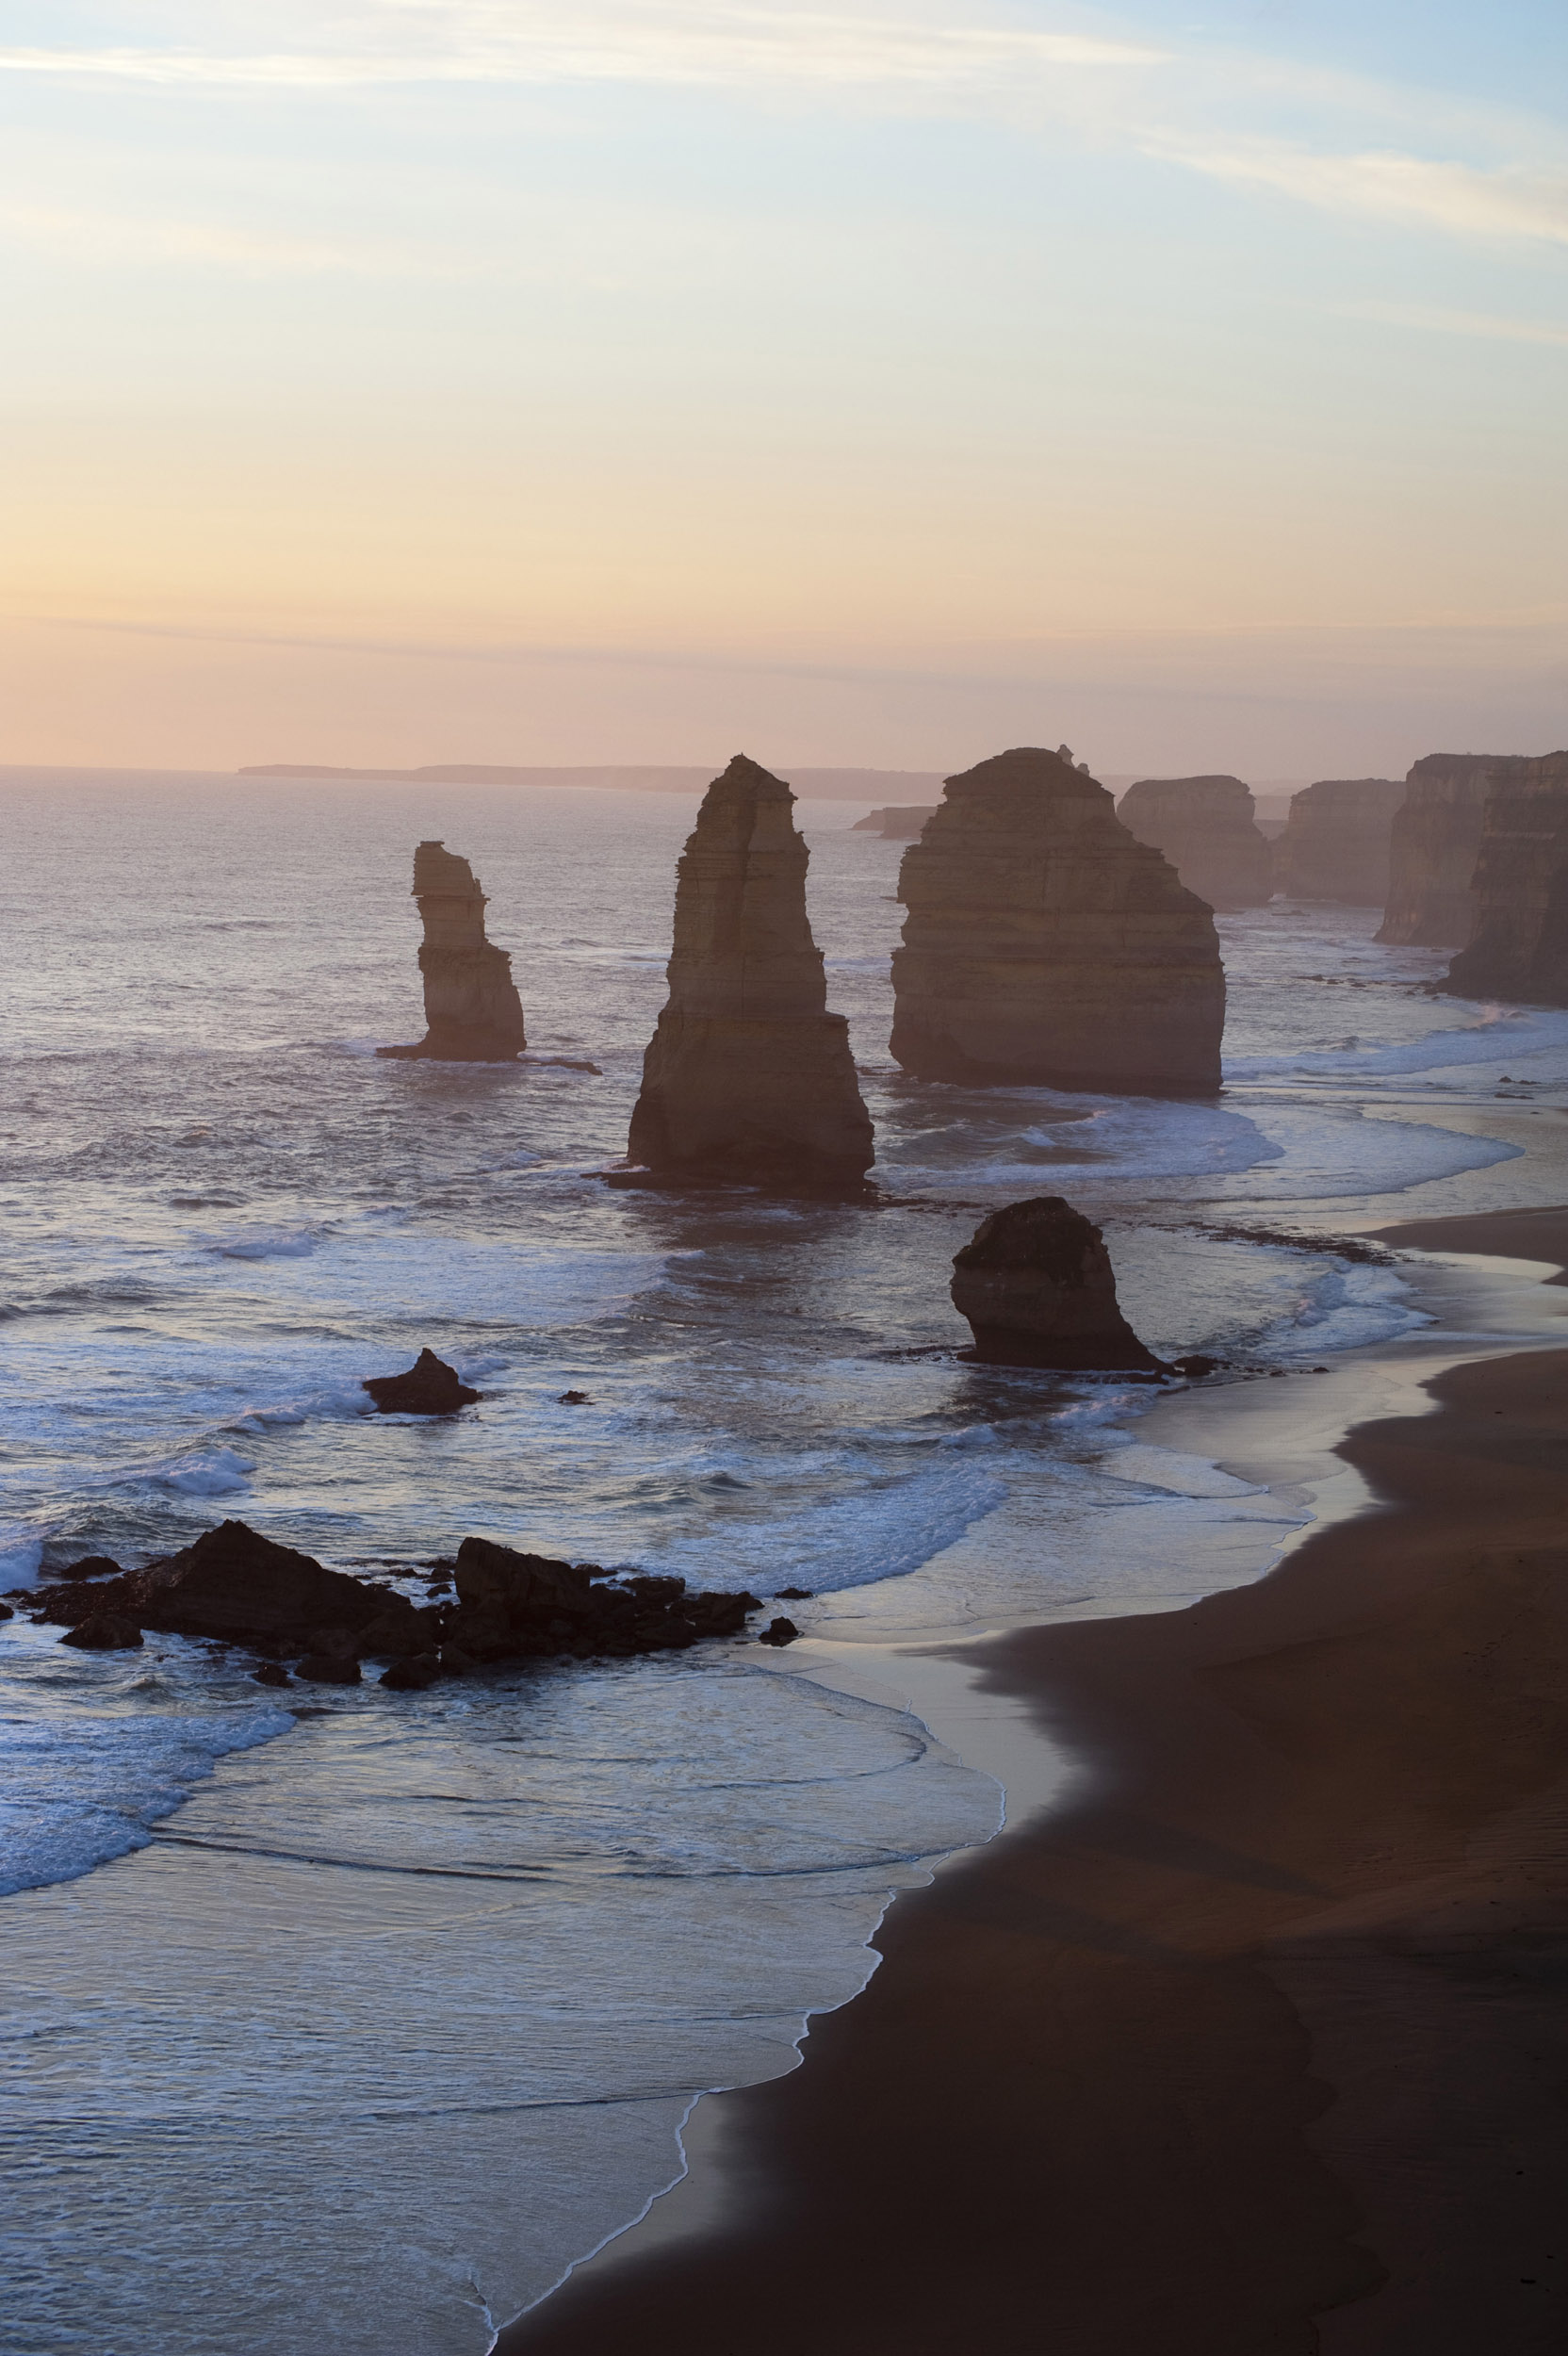 A beautiful sunset and the silhouetted coastline surrounding the 12 Apostles on the Great Ocean Road in Victoria, Australia.